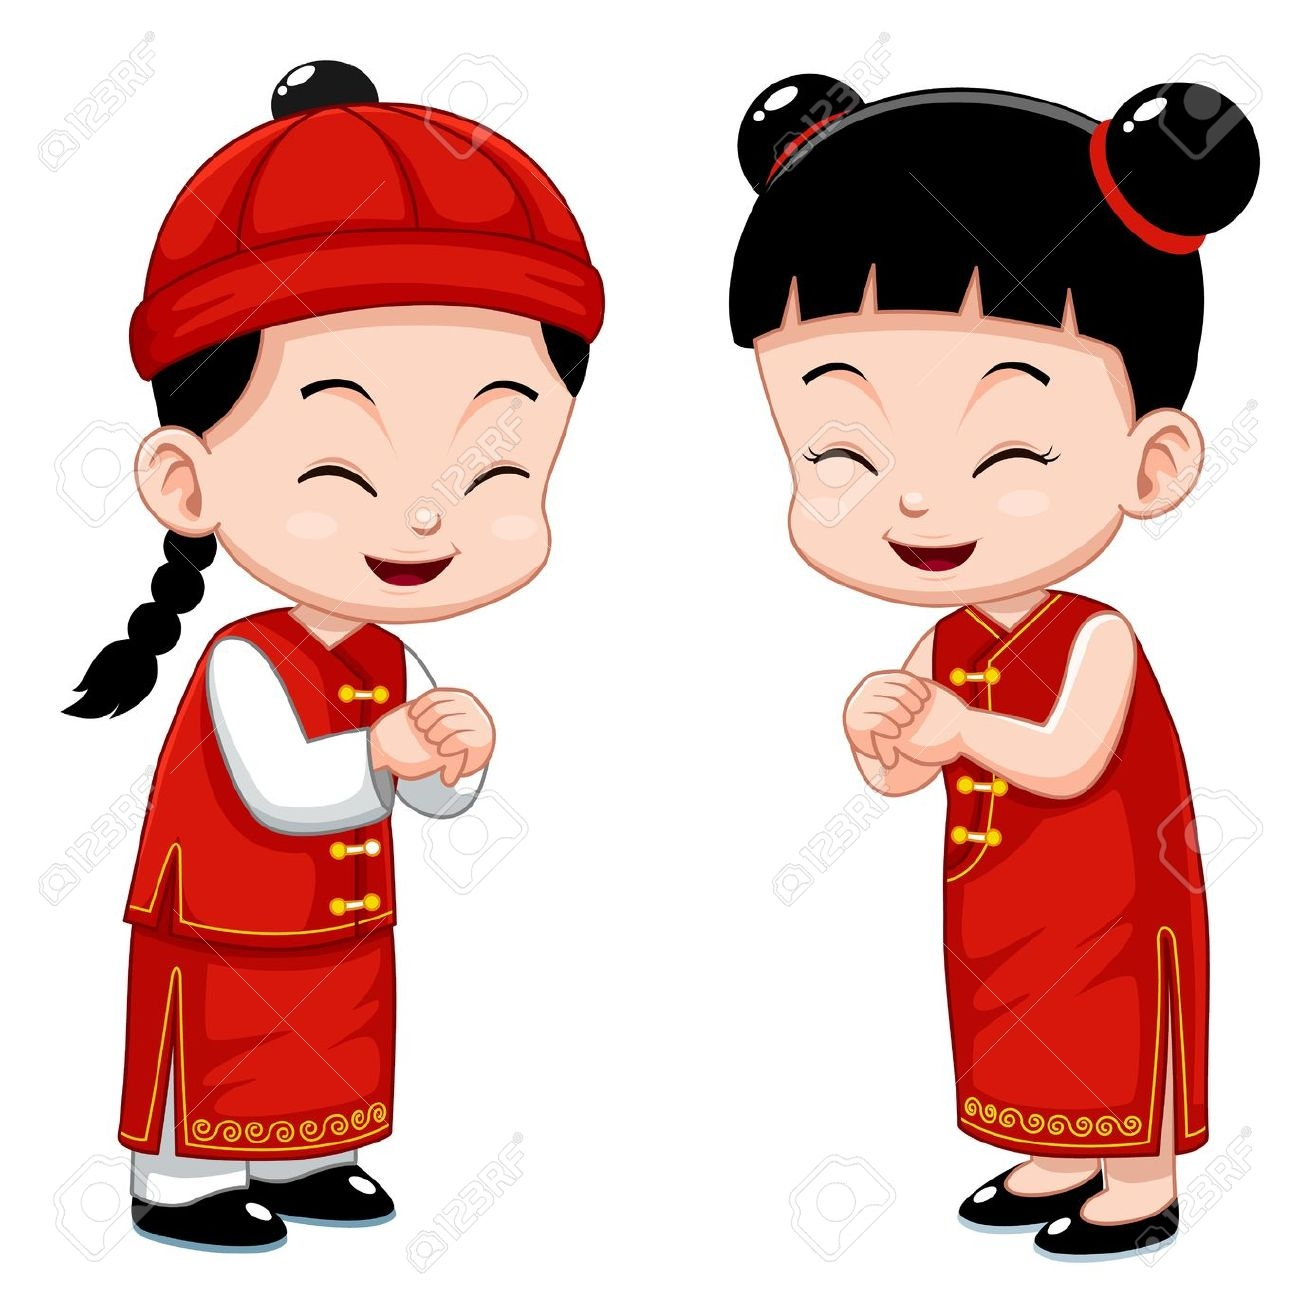 China clipart Elegant Chinese cliparts Clipart Collection.